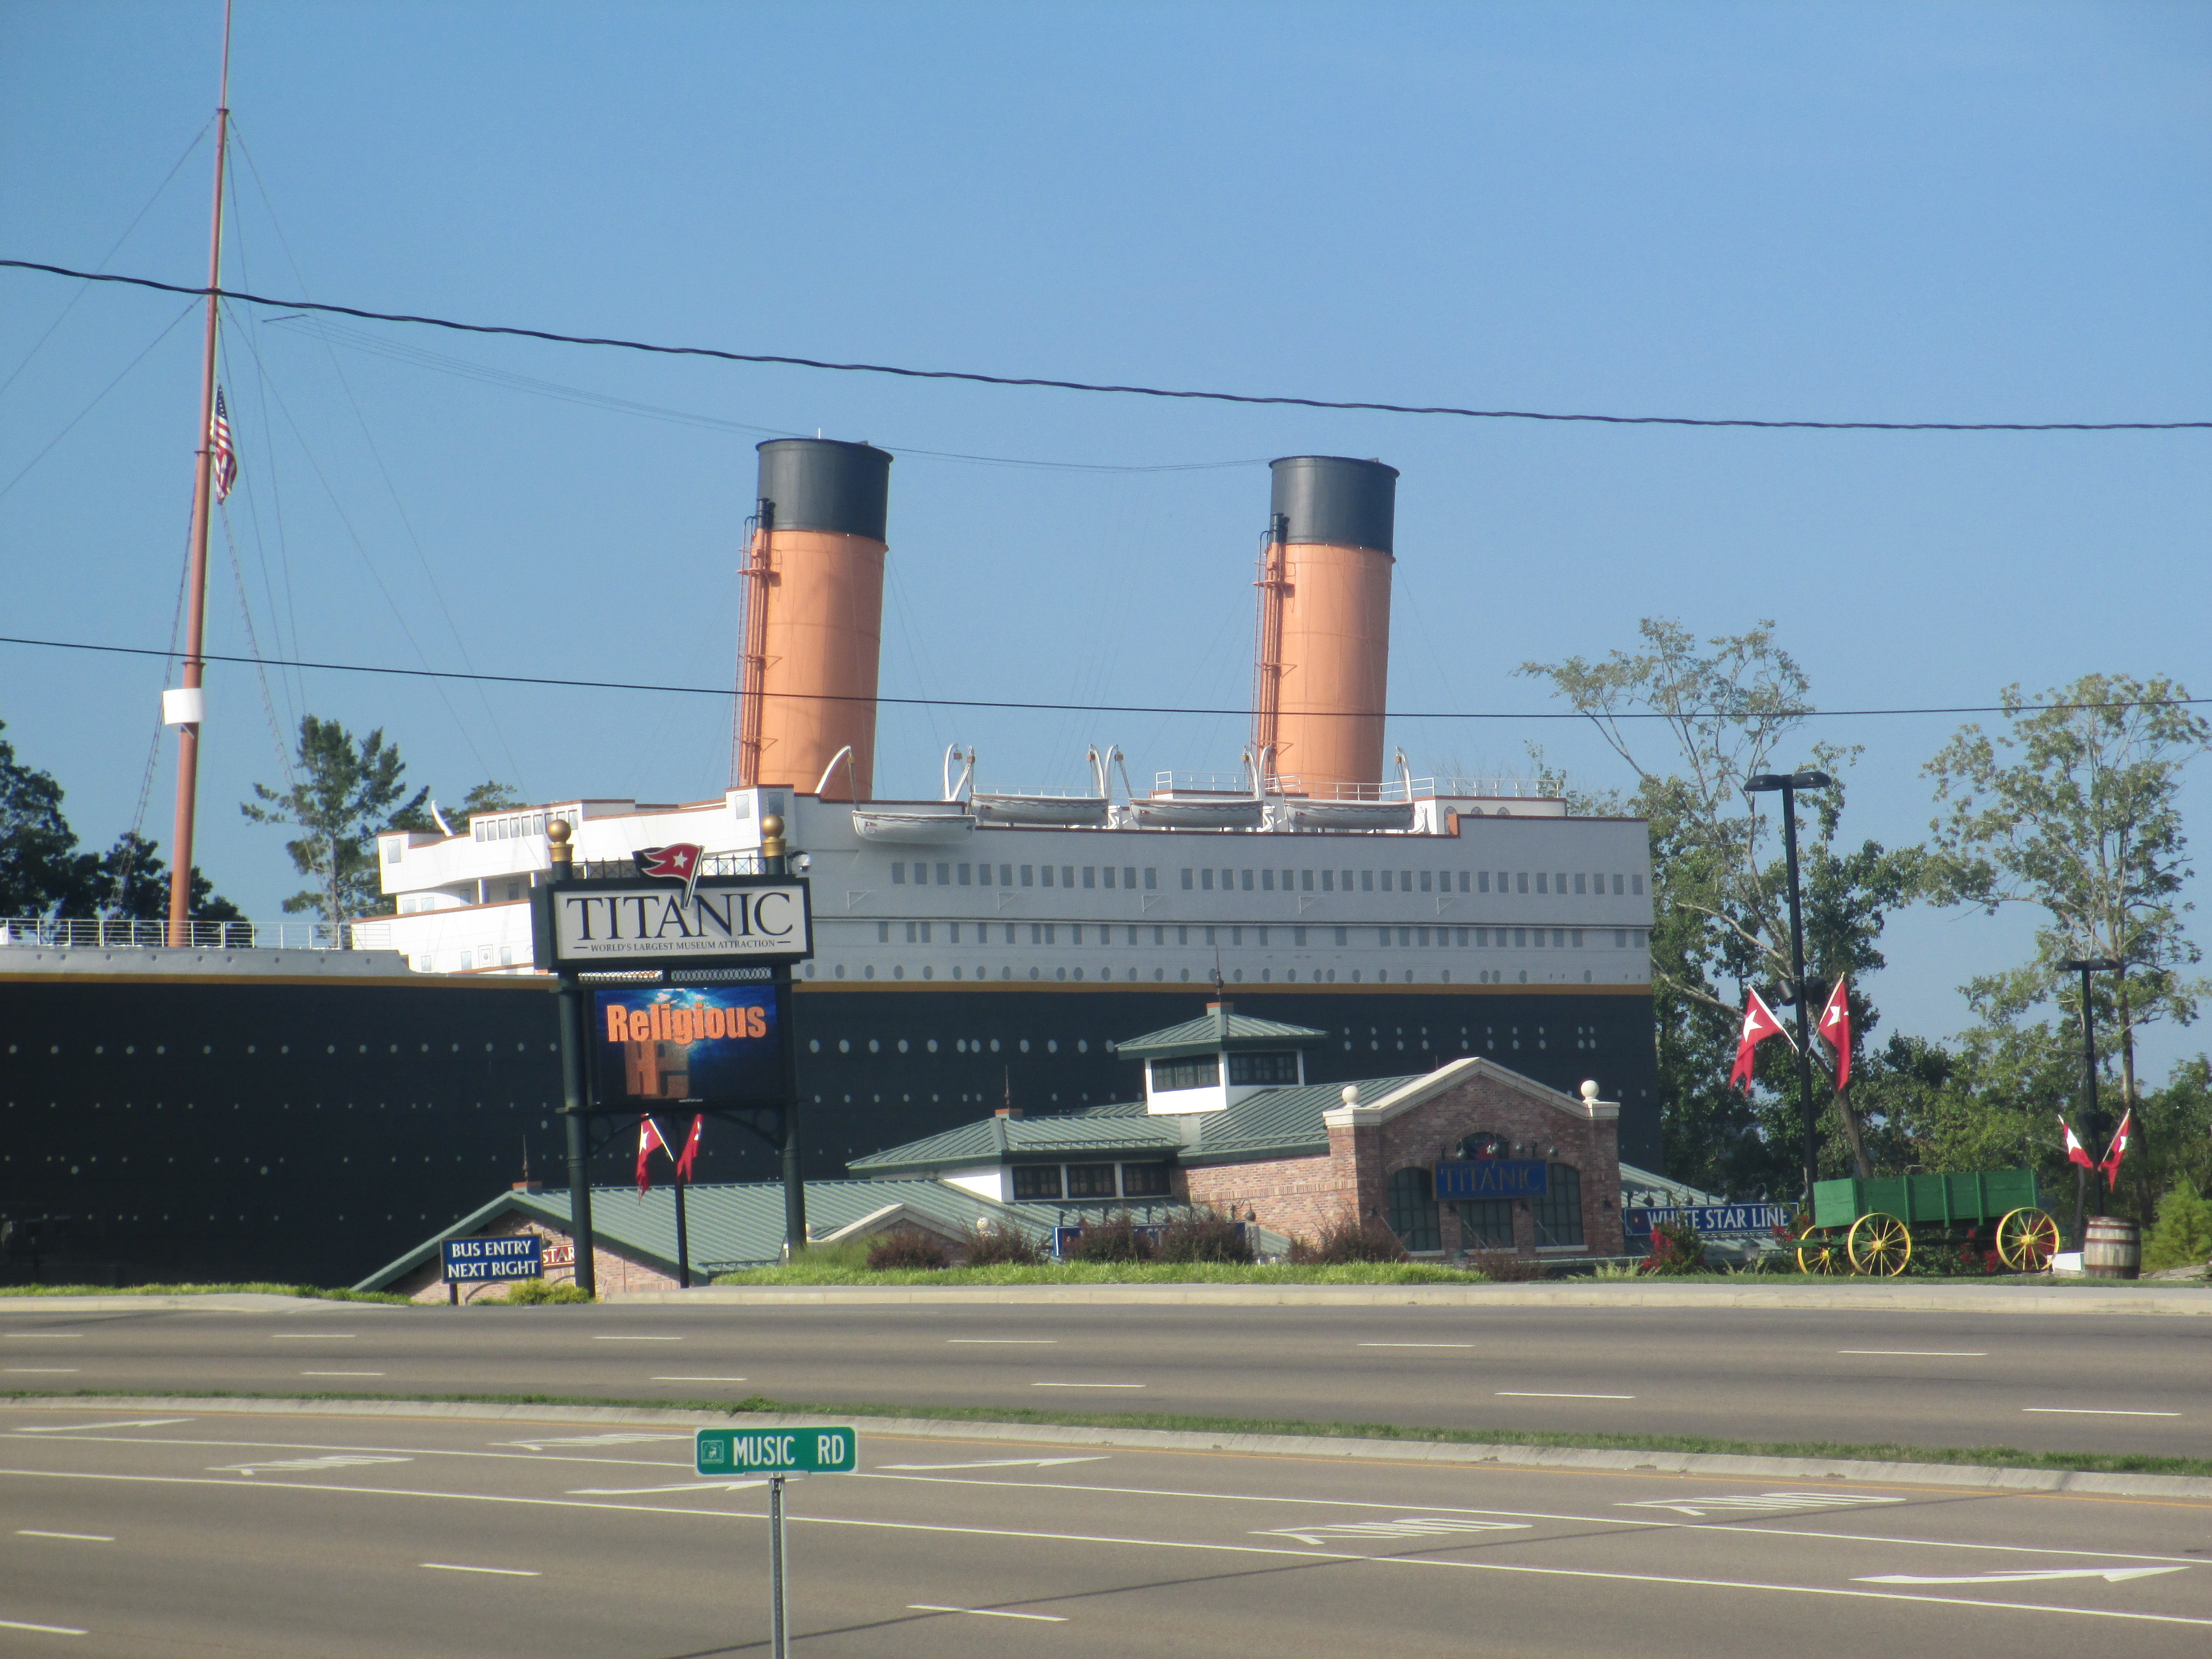 Description Titanic model in Pigeon Forge, TN IMG 5058.JPG